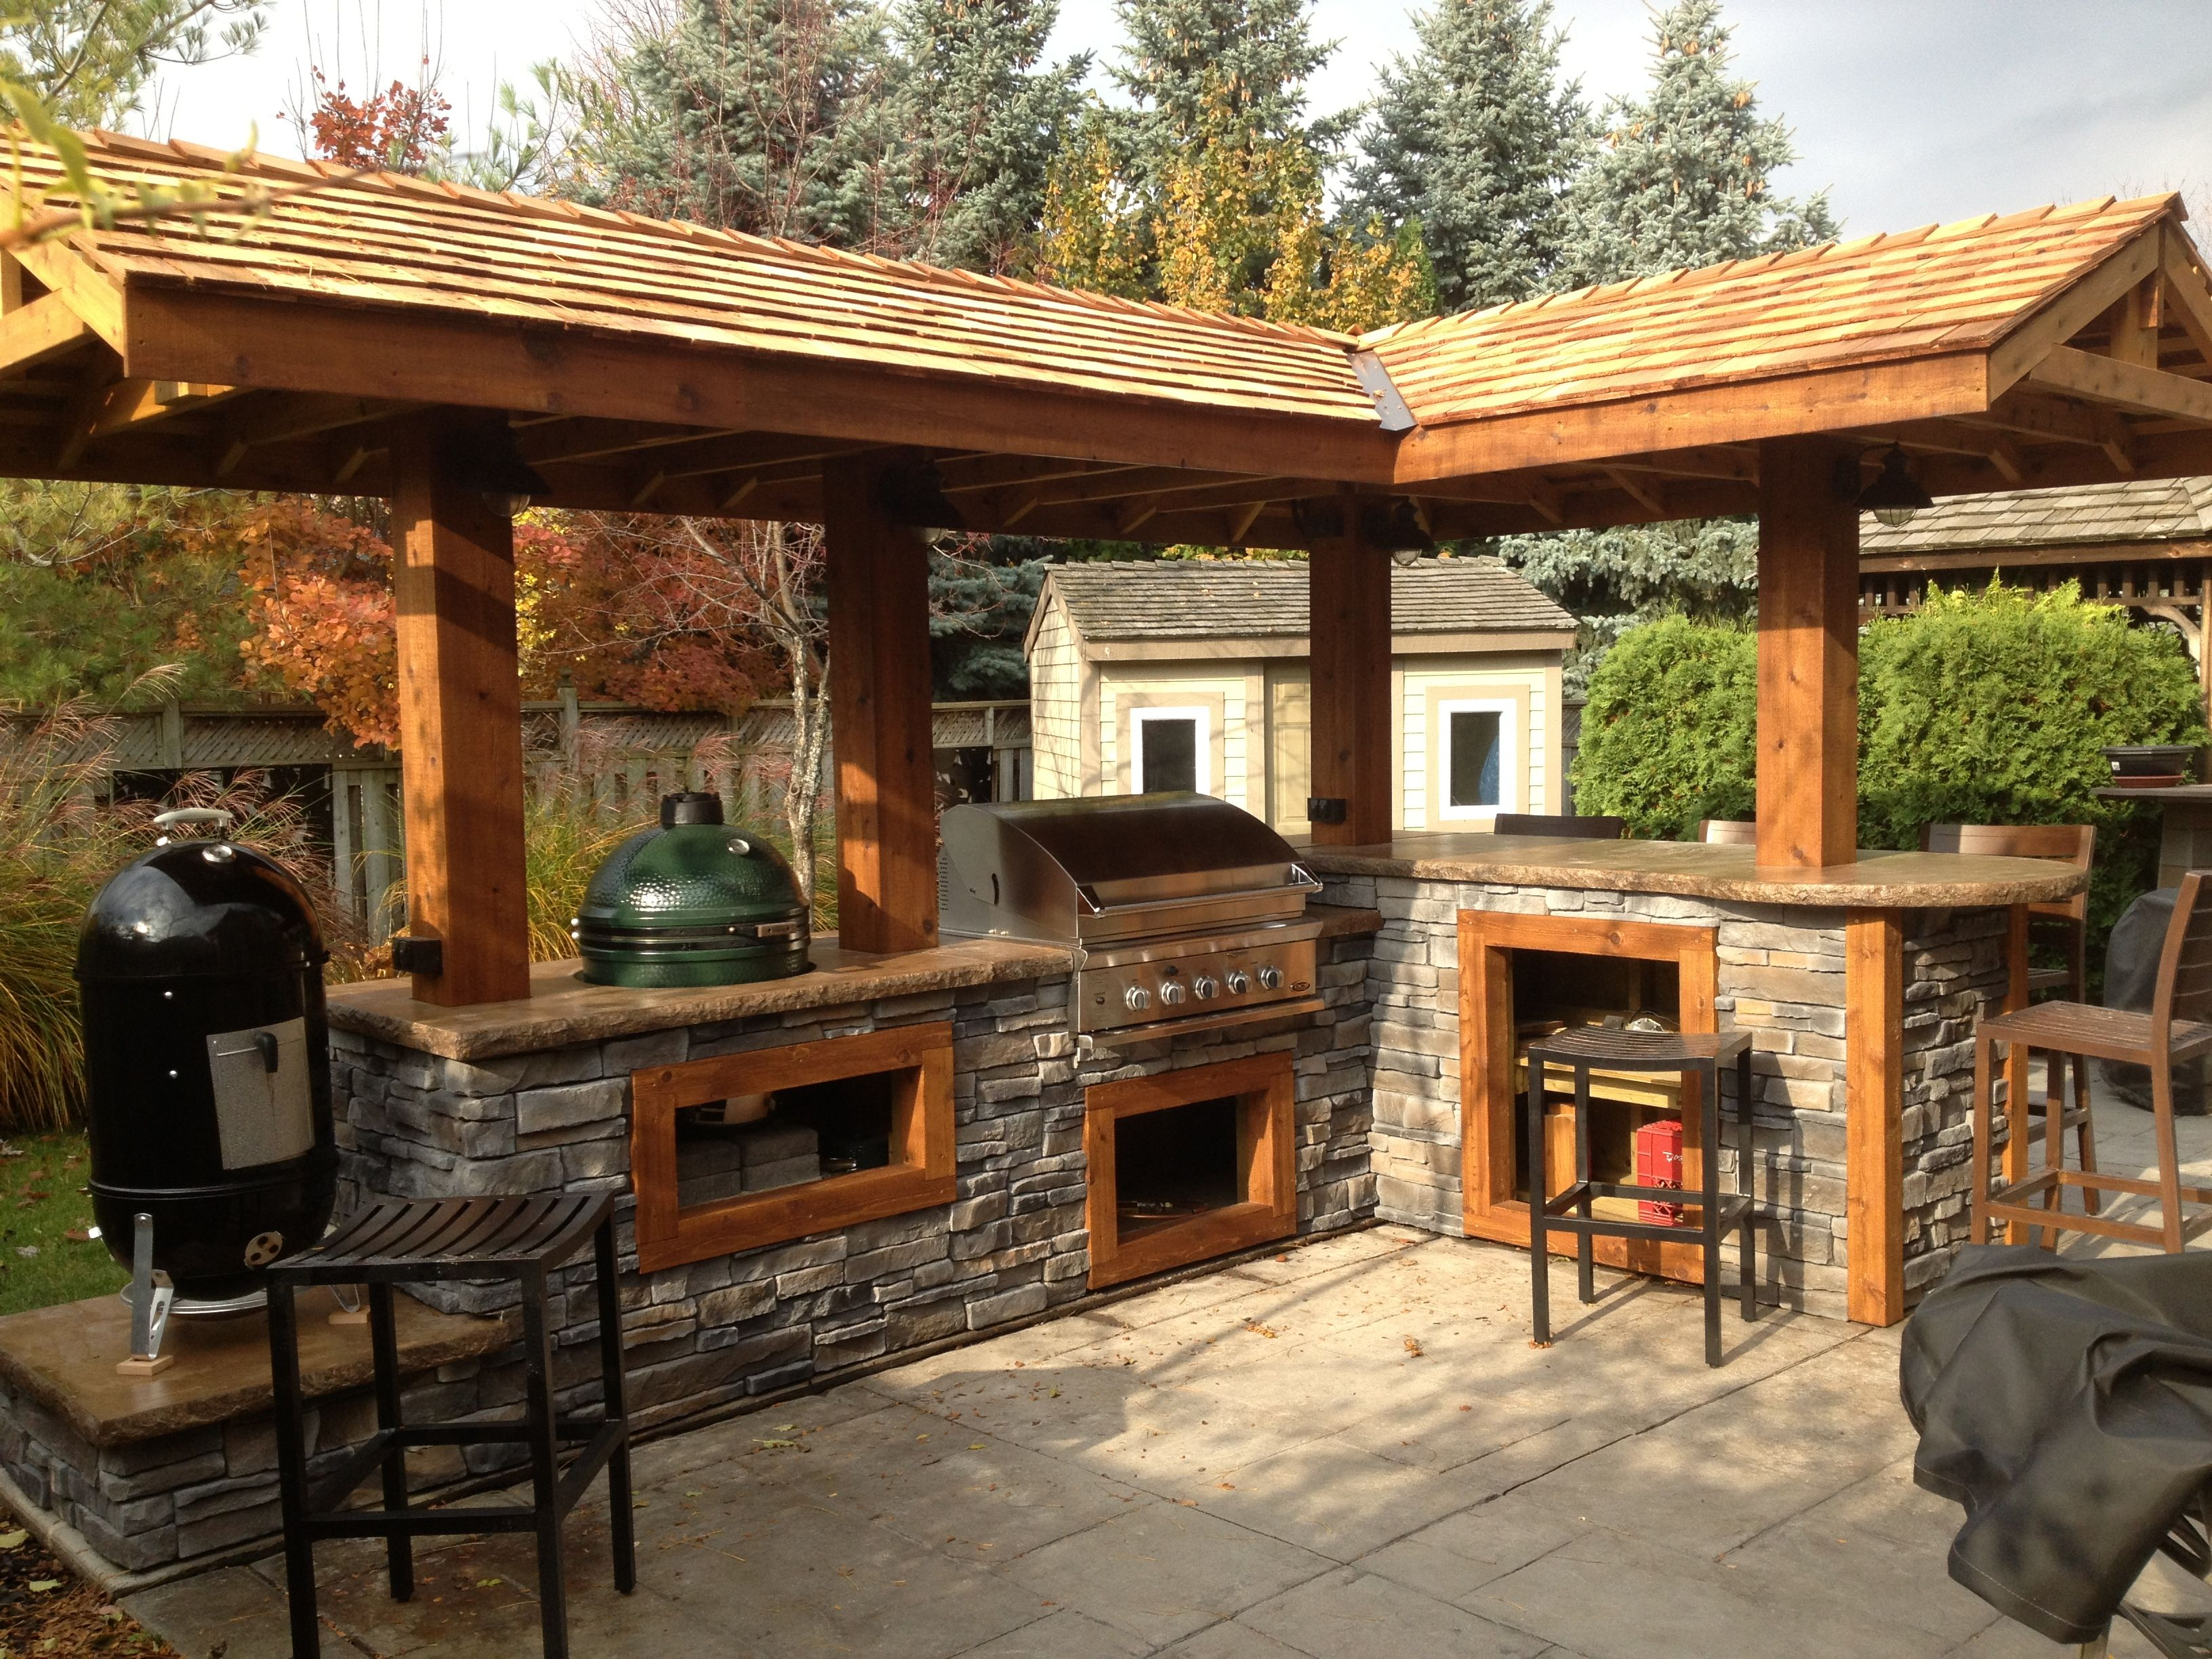 Absolute Post Quattro Post Out Door Kitchen Backyard Pavilion Outdoor Bbq Kitchen Outdoor Kitchen Island